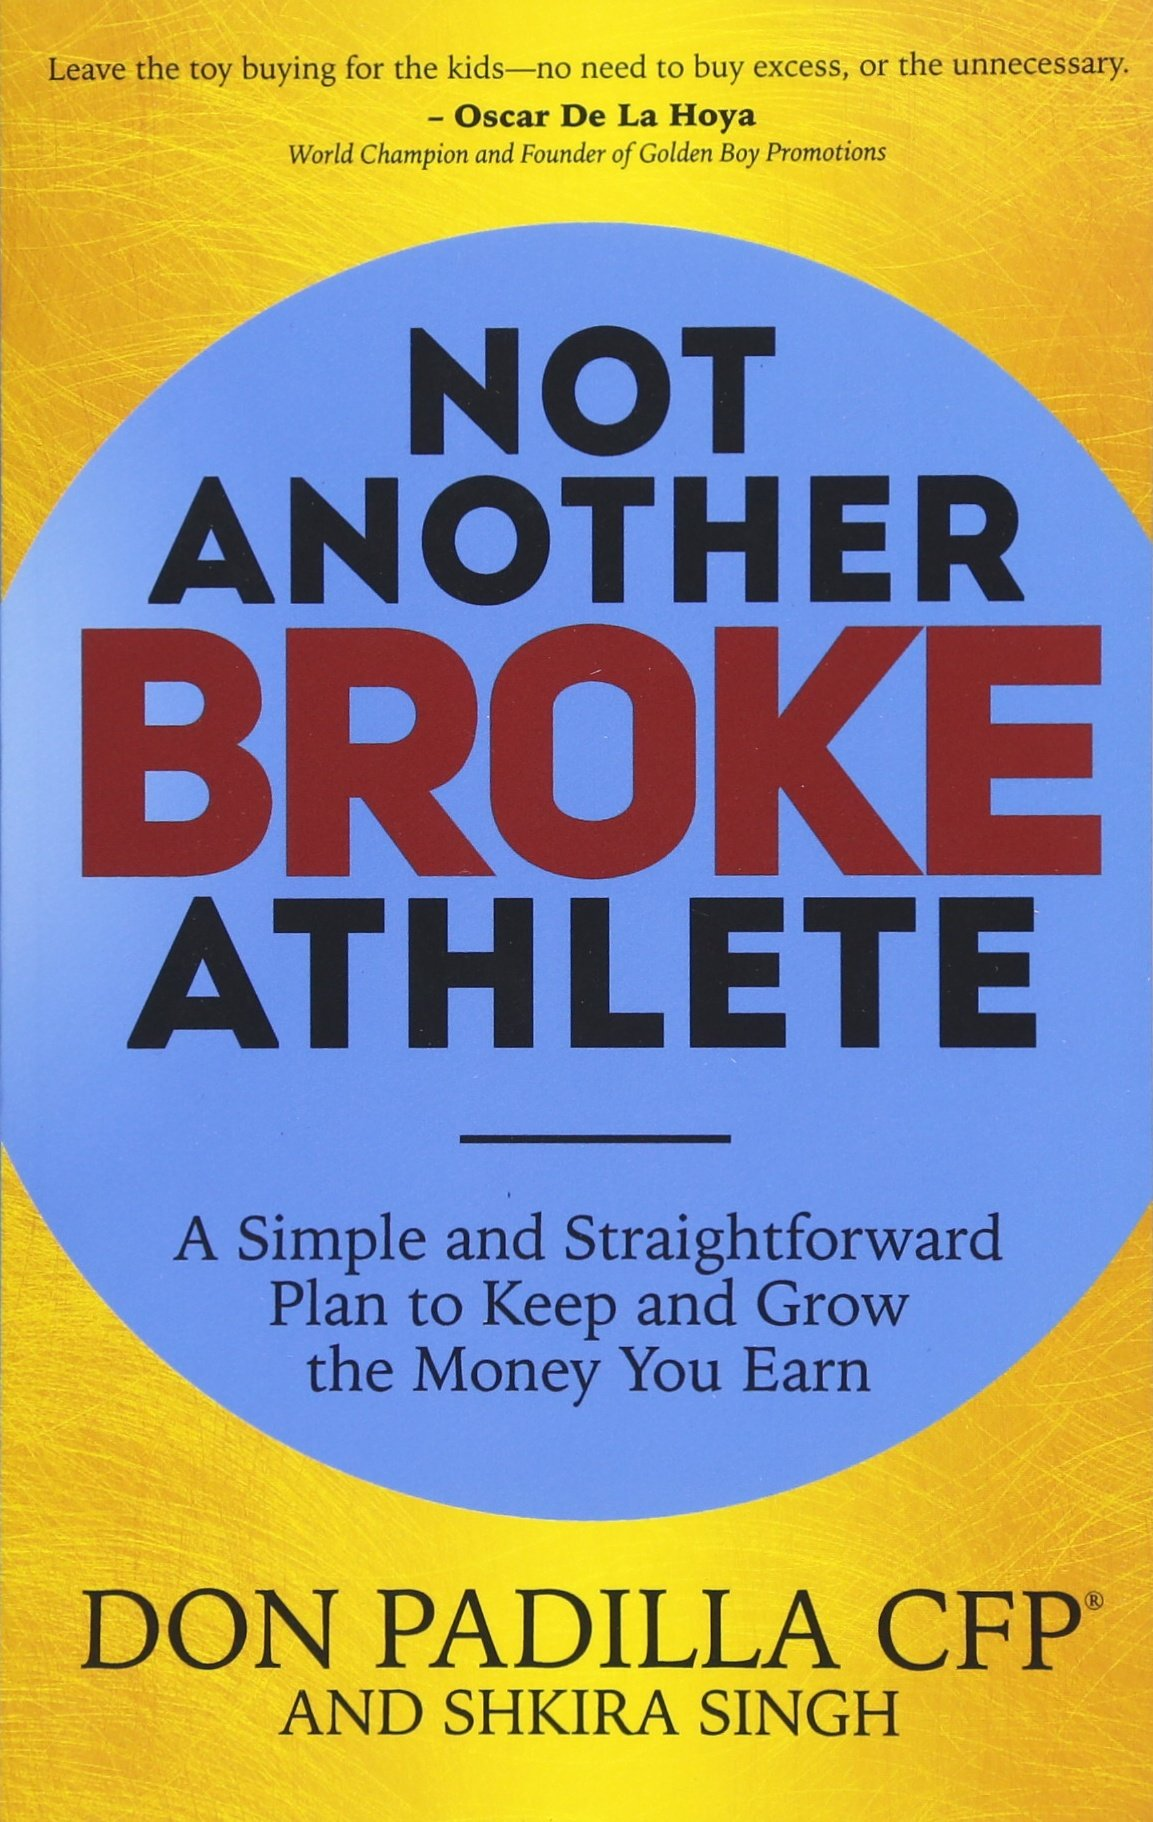 Not Another Broke Athlete: A Simple and Straightforward Plan to Keep and Grow the Money You Earn by Morgan James Publishing